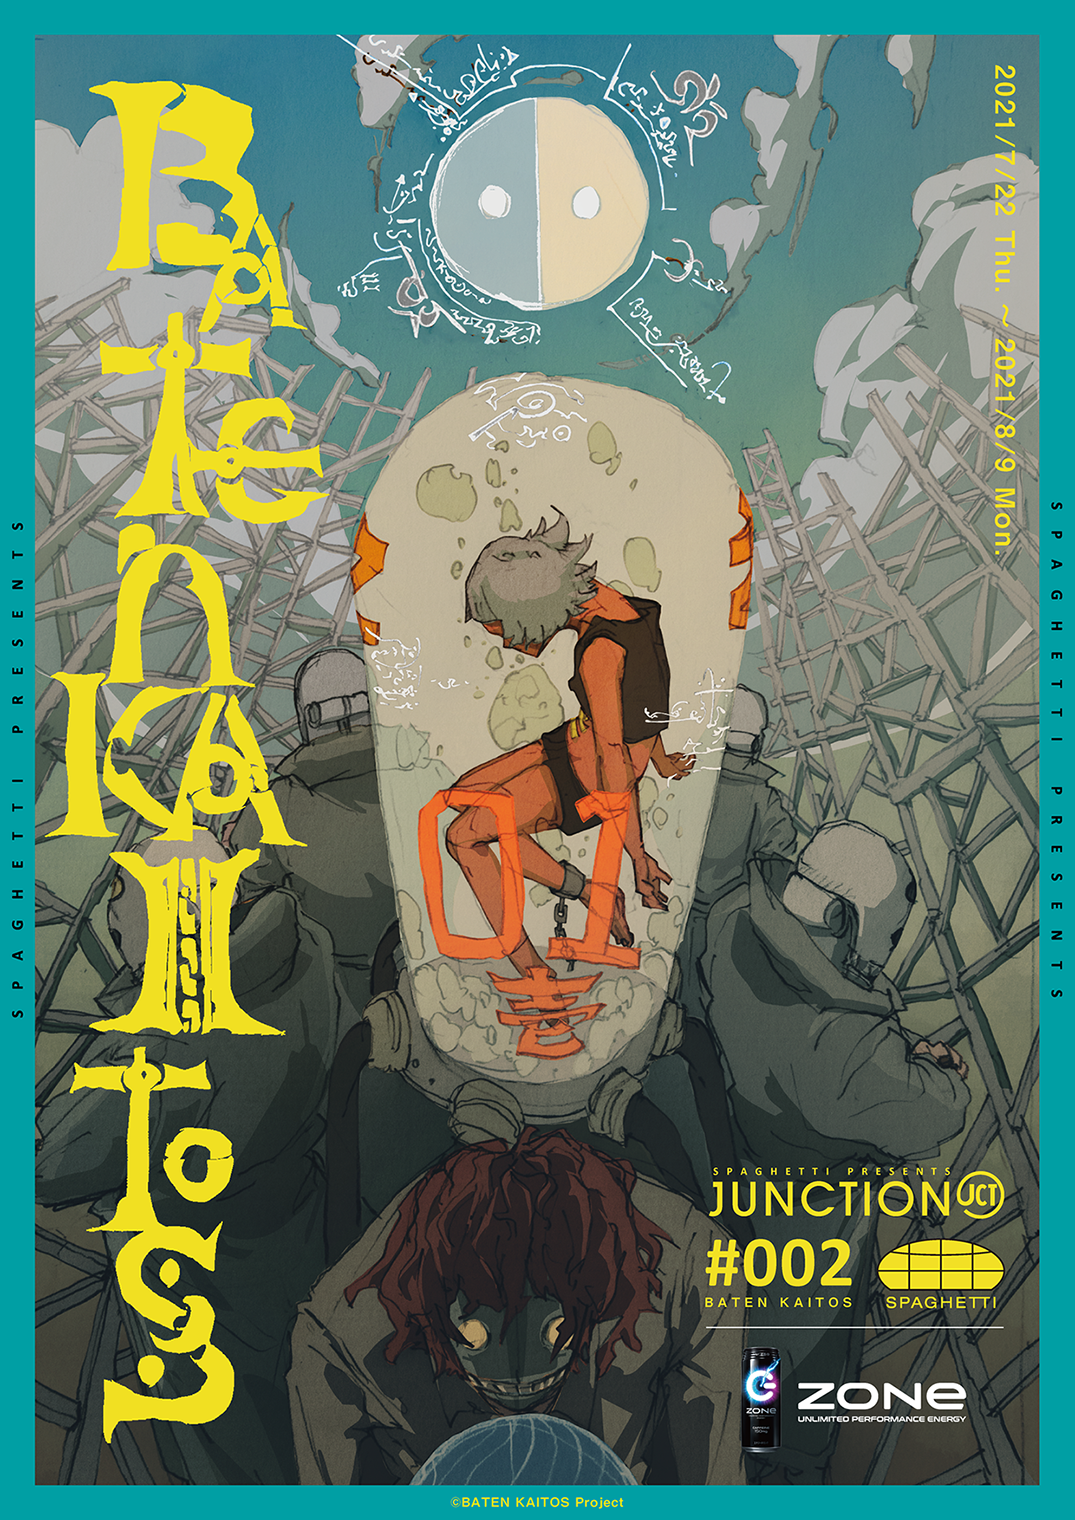 SPAGHETTI PRESENTS JUNCTION #002<br>BATEN KAITOS powered by ZONe